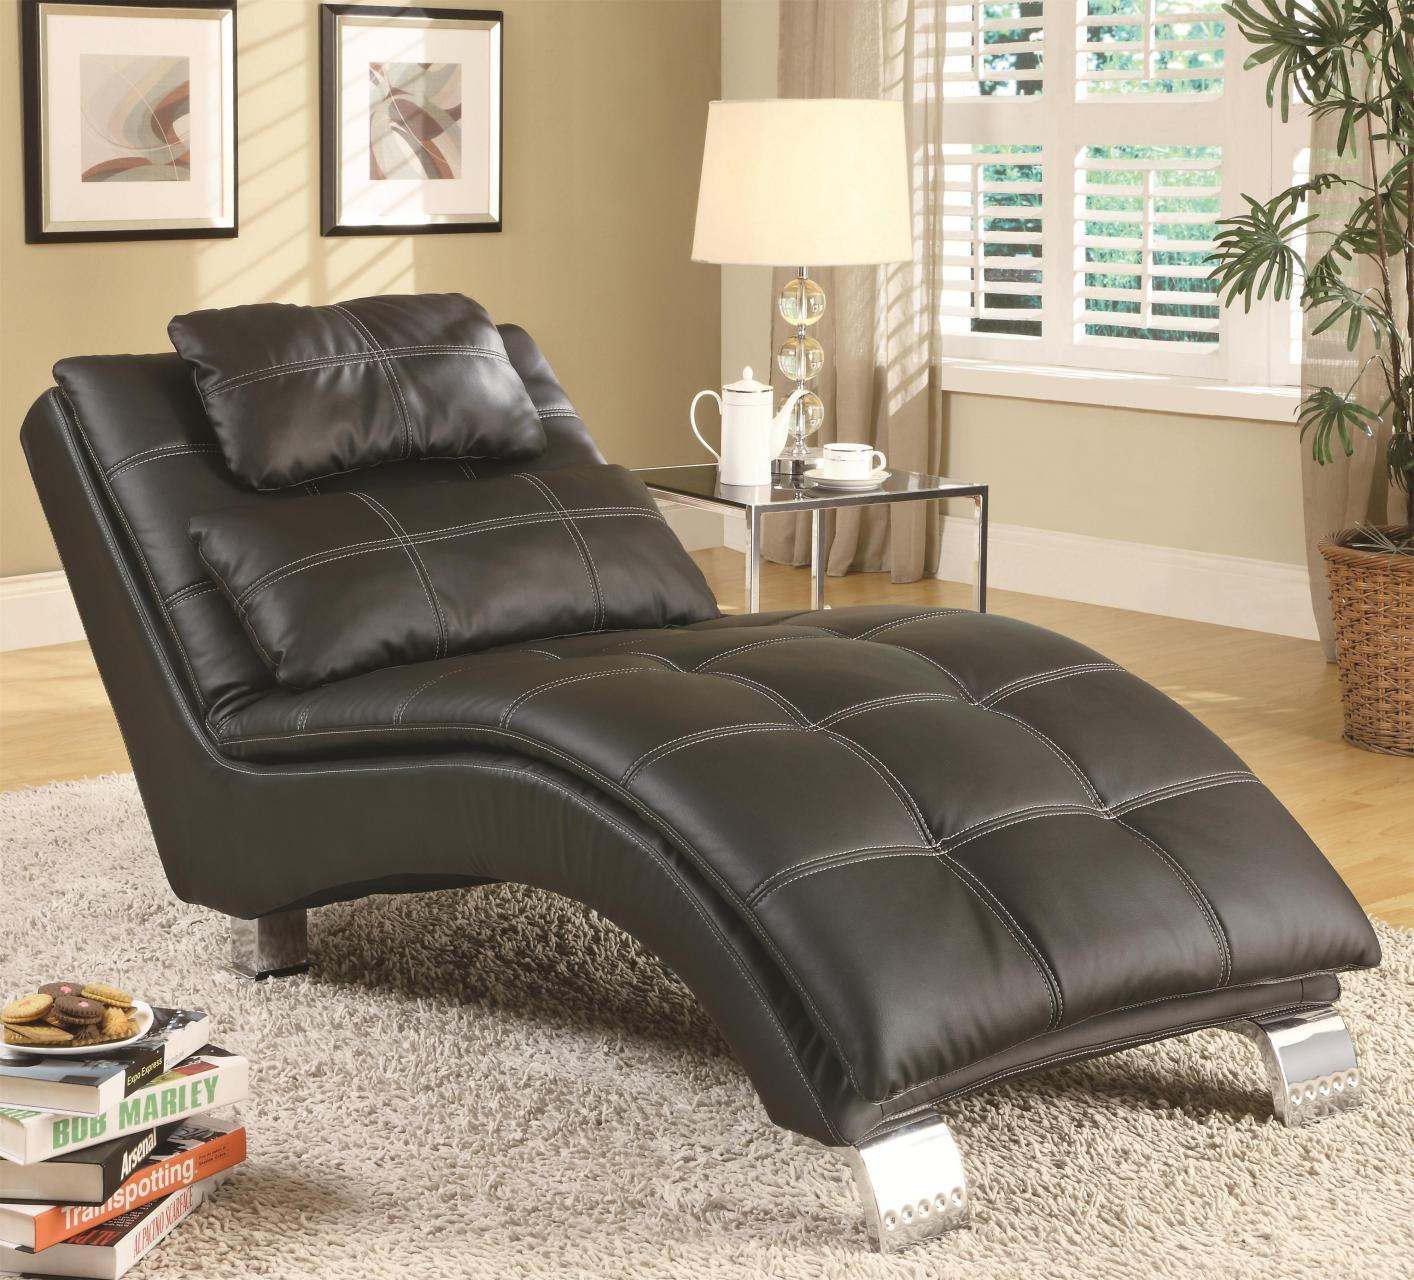 Black Leather Chaise Lounge : where to buy chaise lounge - Sectionals, Sofas & Couches